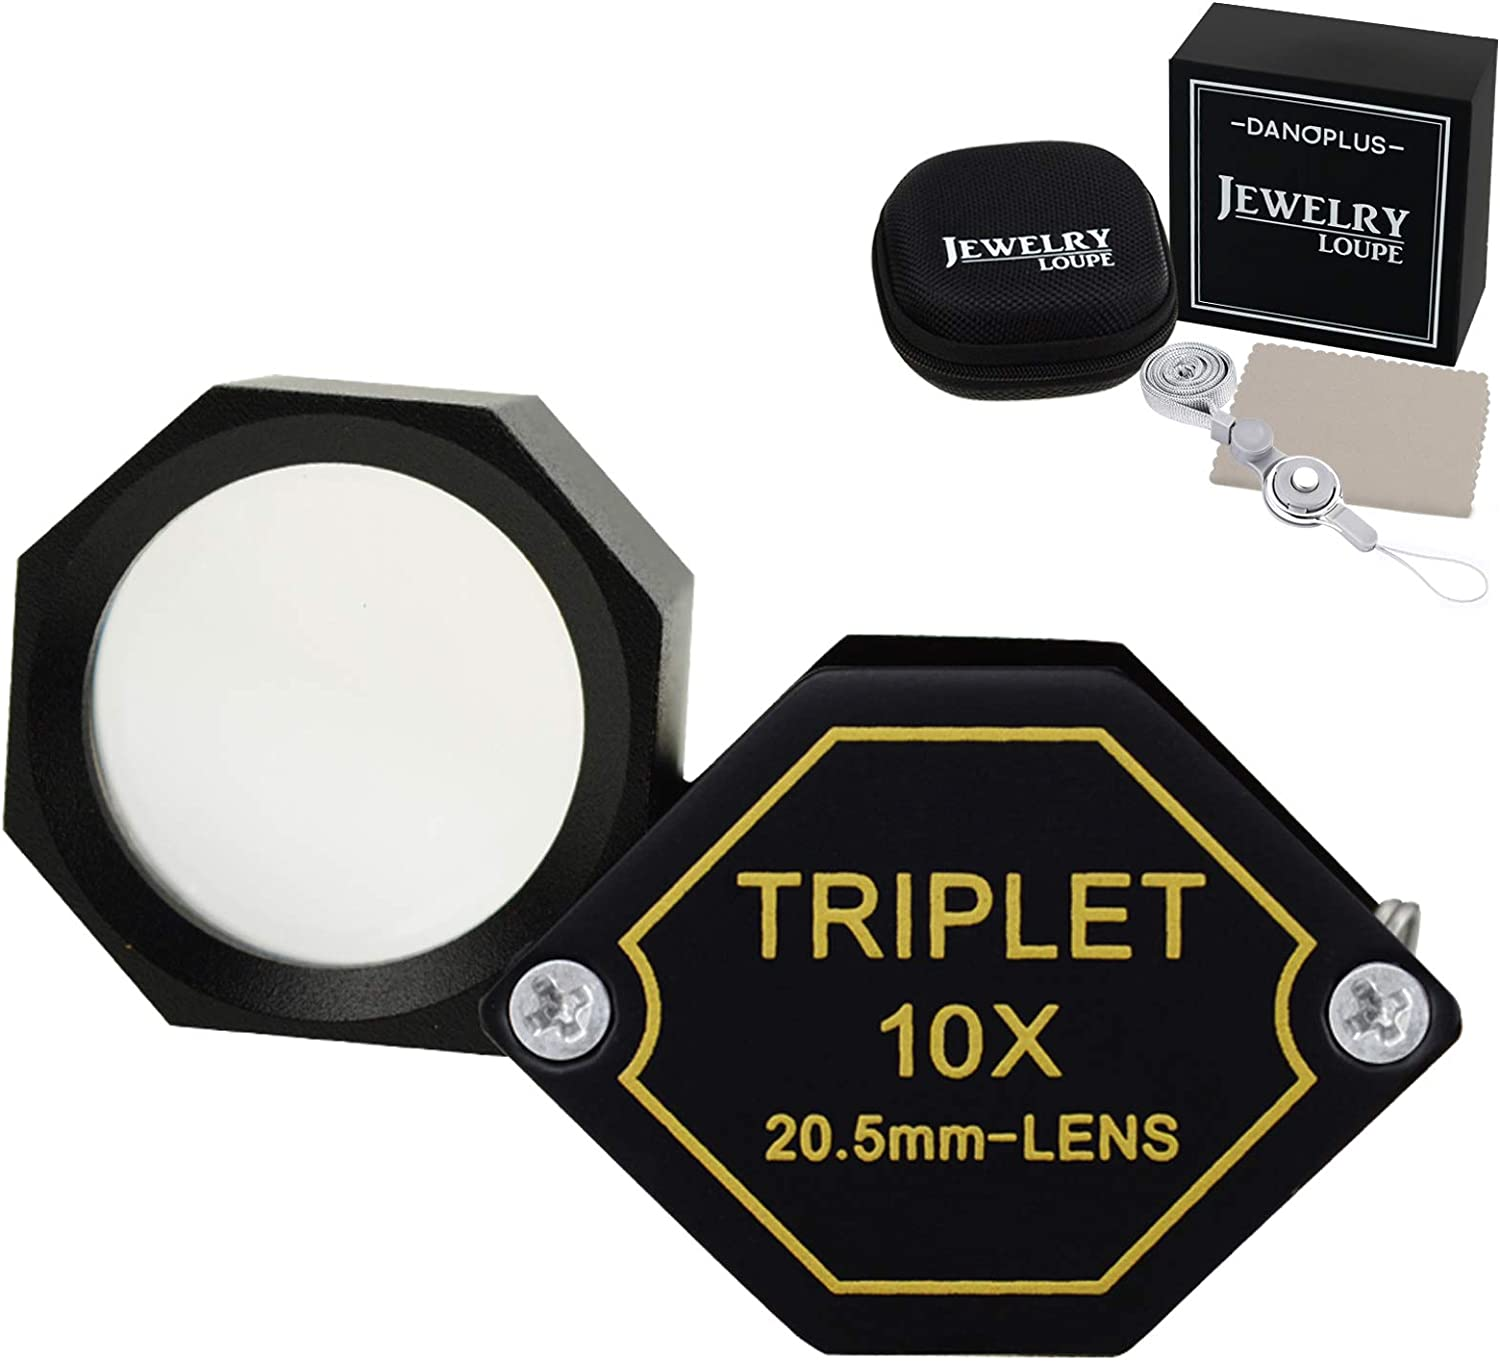 10x Magnifier Jewelry Loupe 20.5mm Glass Denver Mall Po Ranking TOP17 Triplet Optical Lens